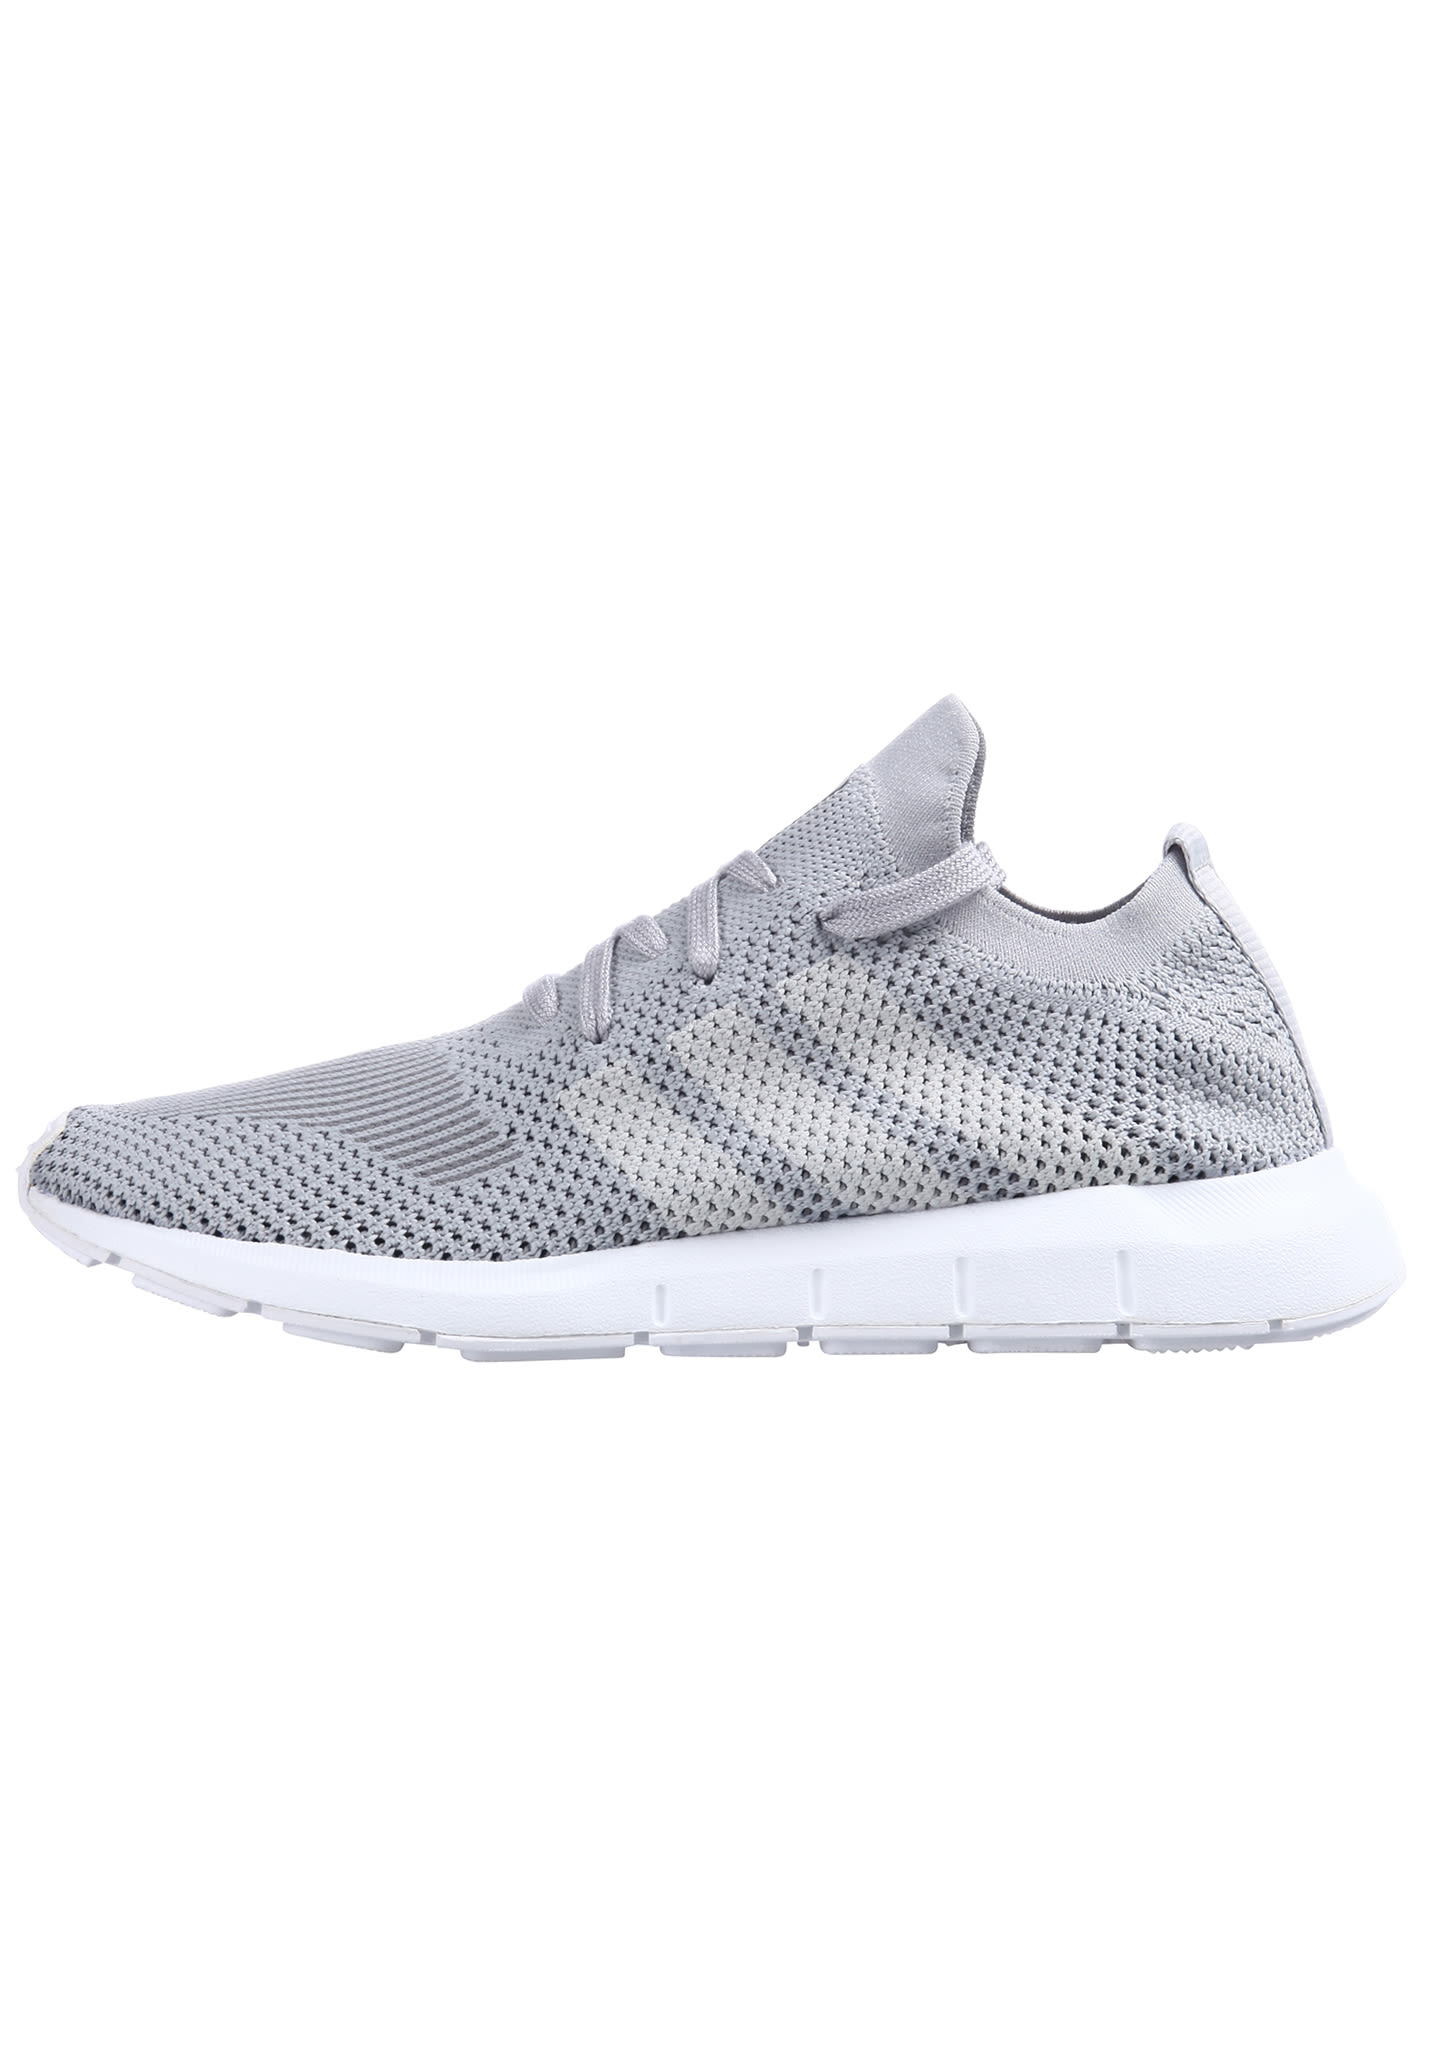 Run Pk Sneaker Damen Originals Swift Grau Adidas Für n0XPw8Ok